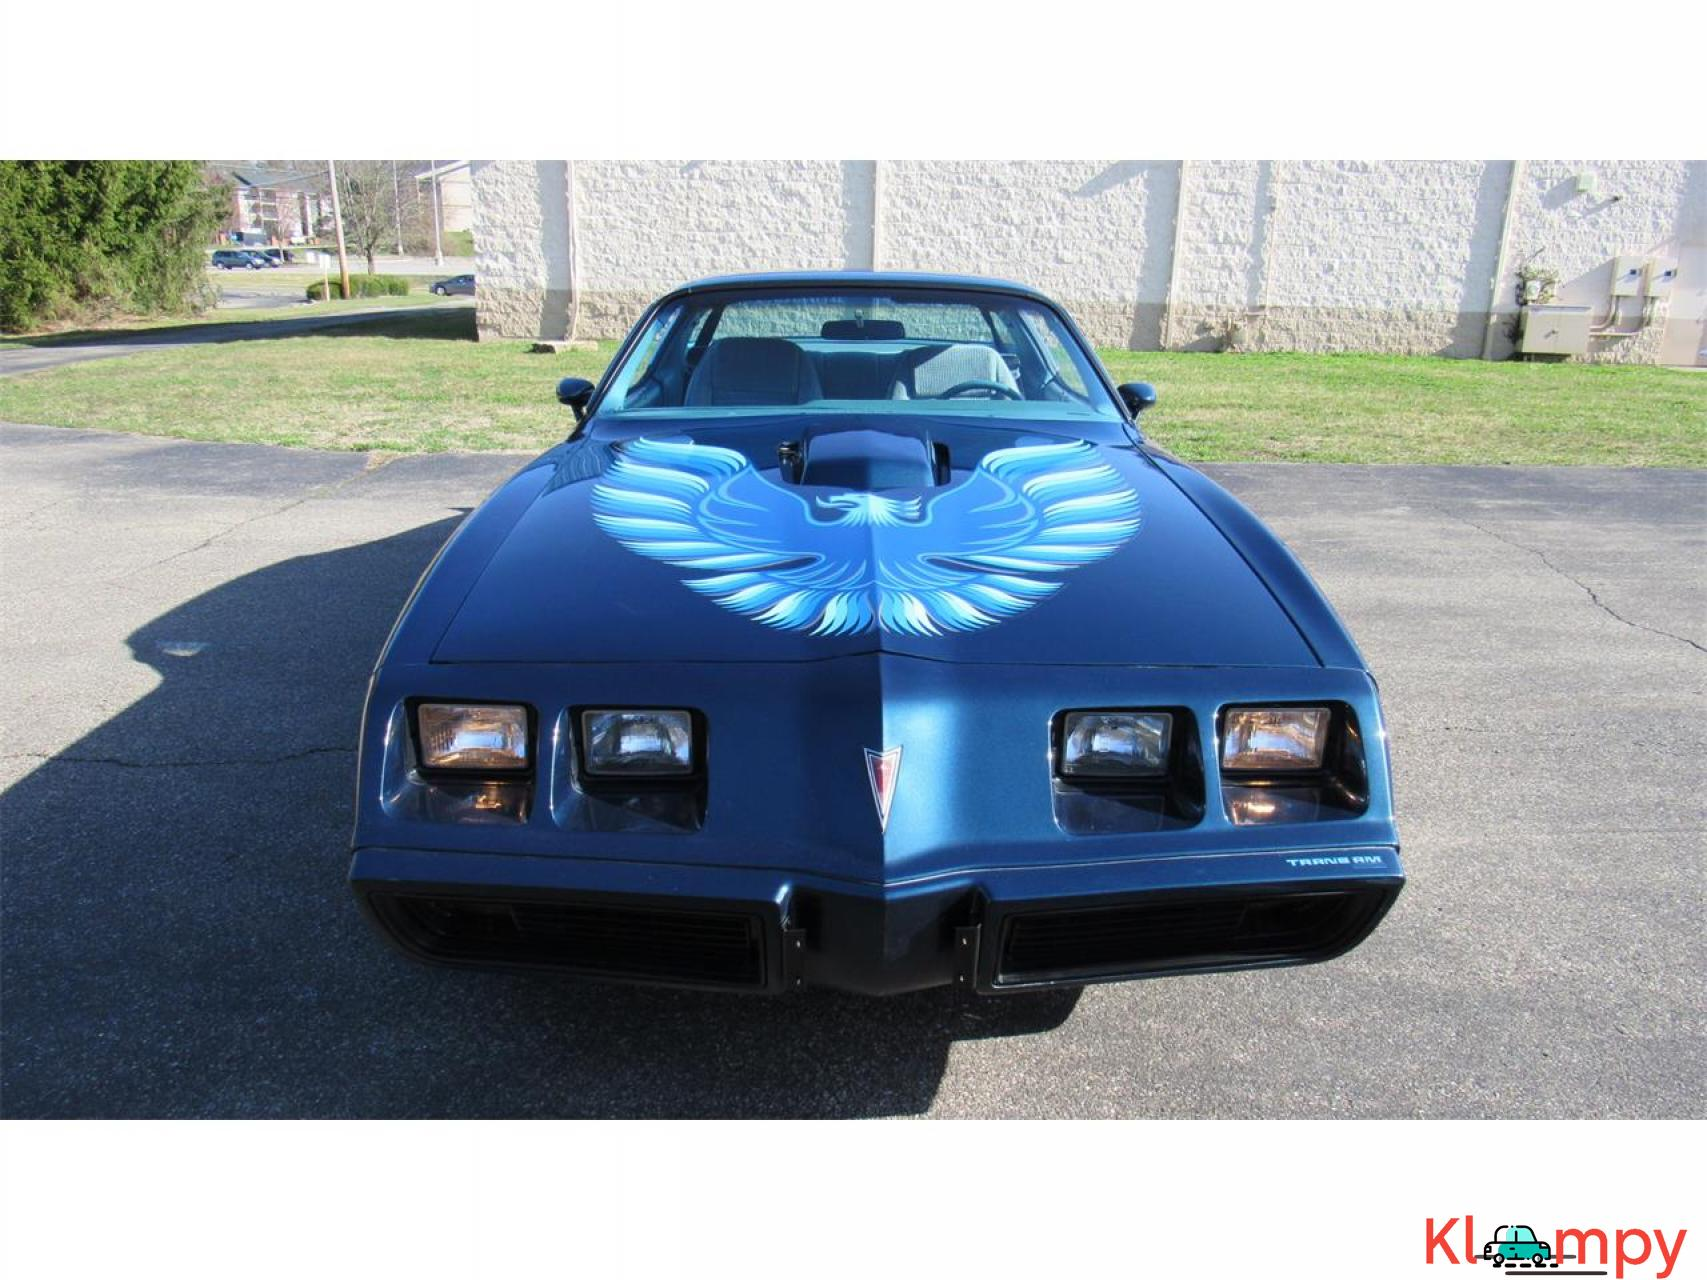 1979 Pontiac Firebird Trans Am 400 engine Original - 9/20